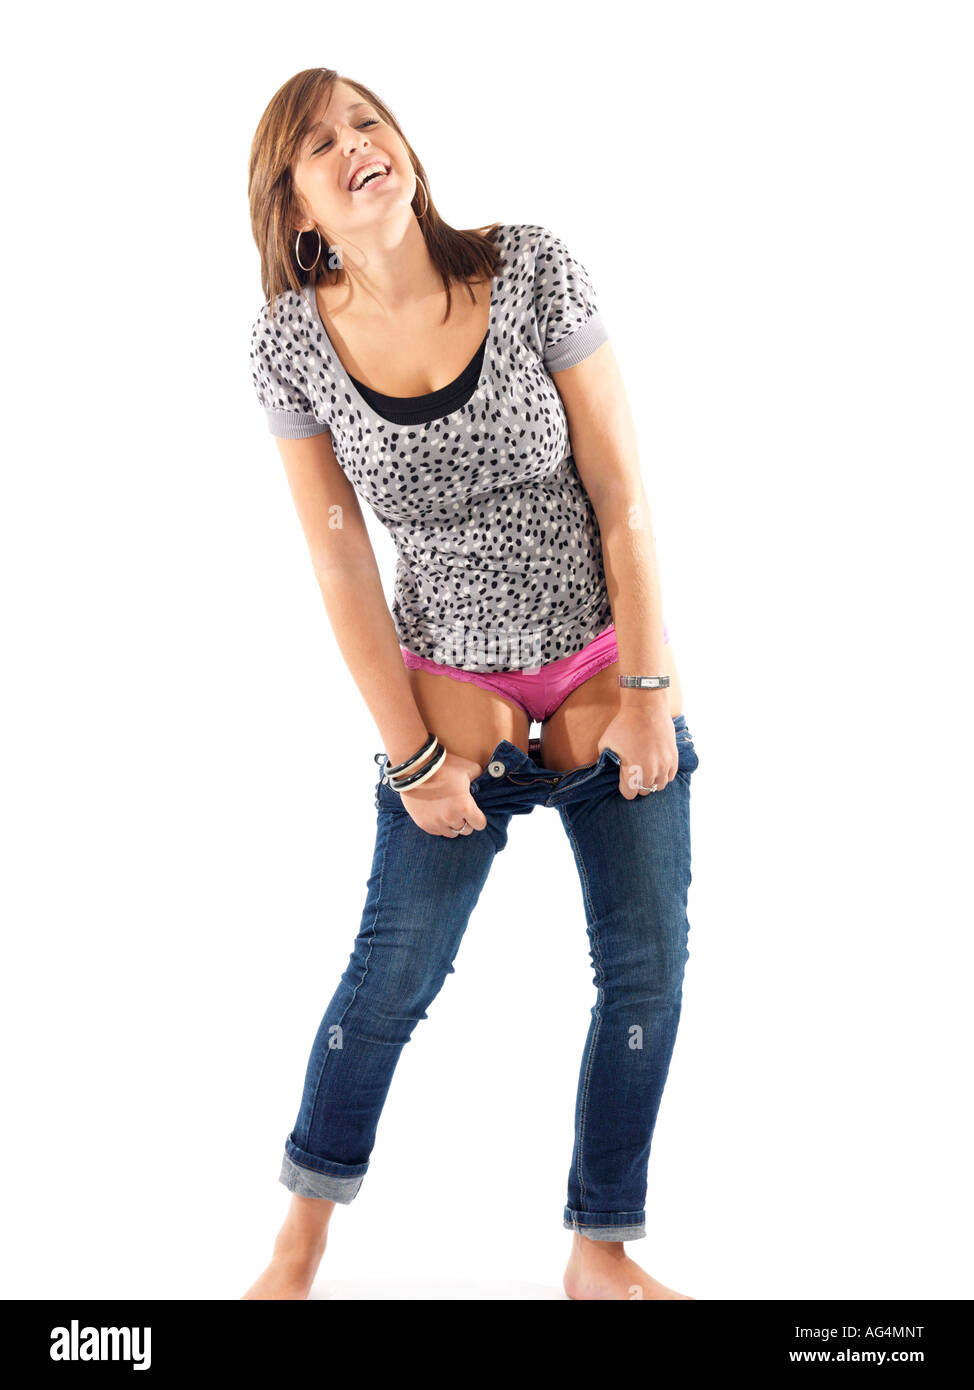 Female Putting Jeans